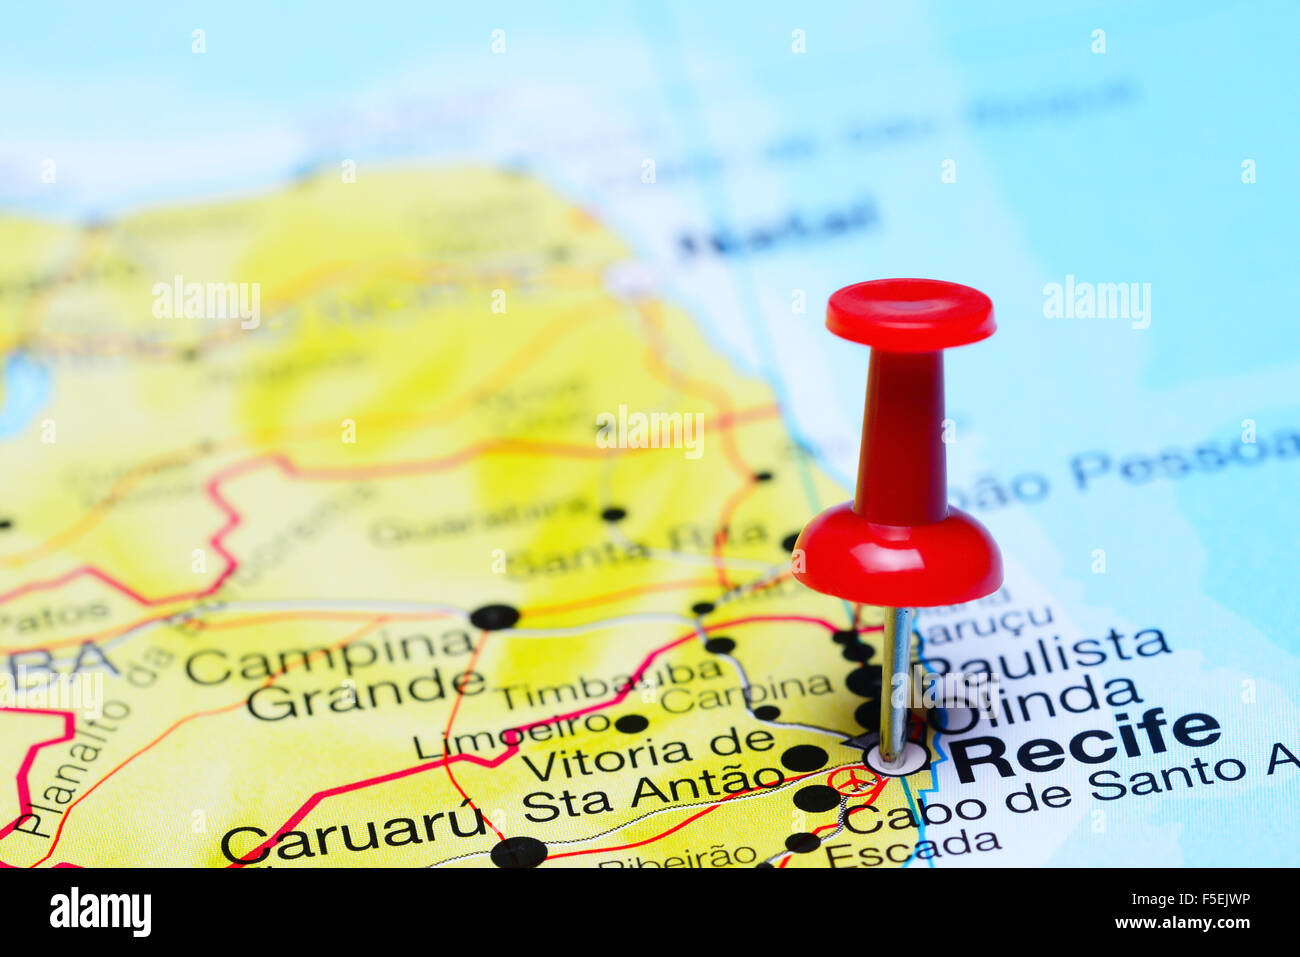 Recife pinned on a map of Brazil Stock Photo Royalty Free Image